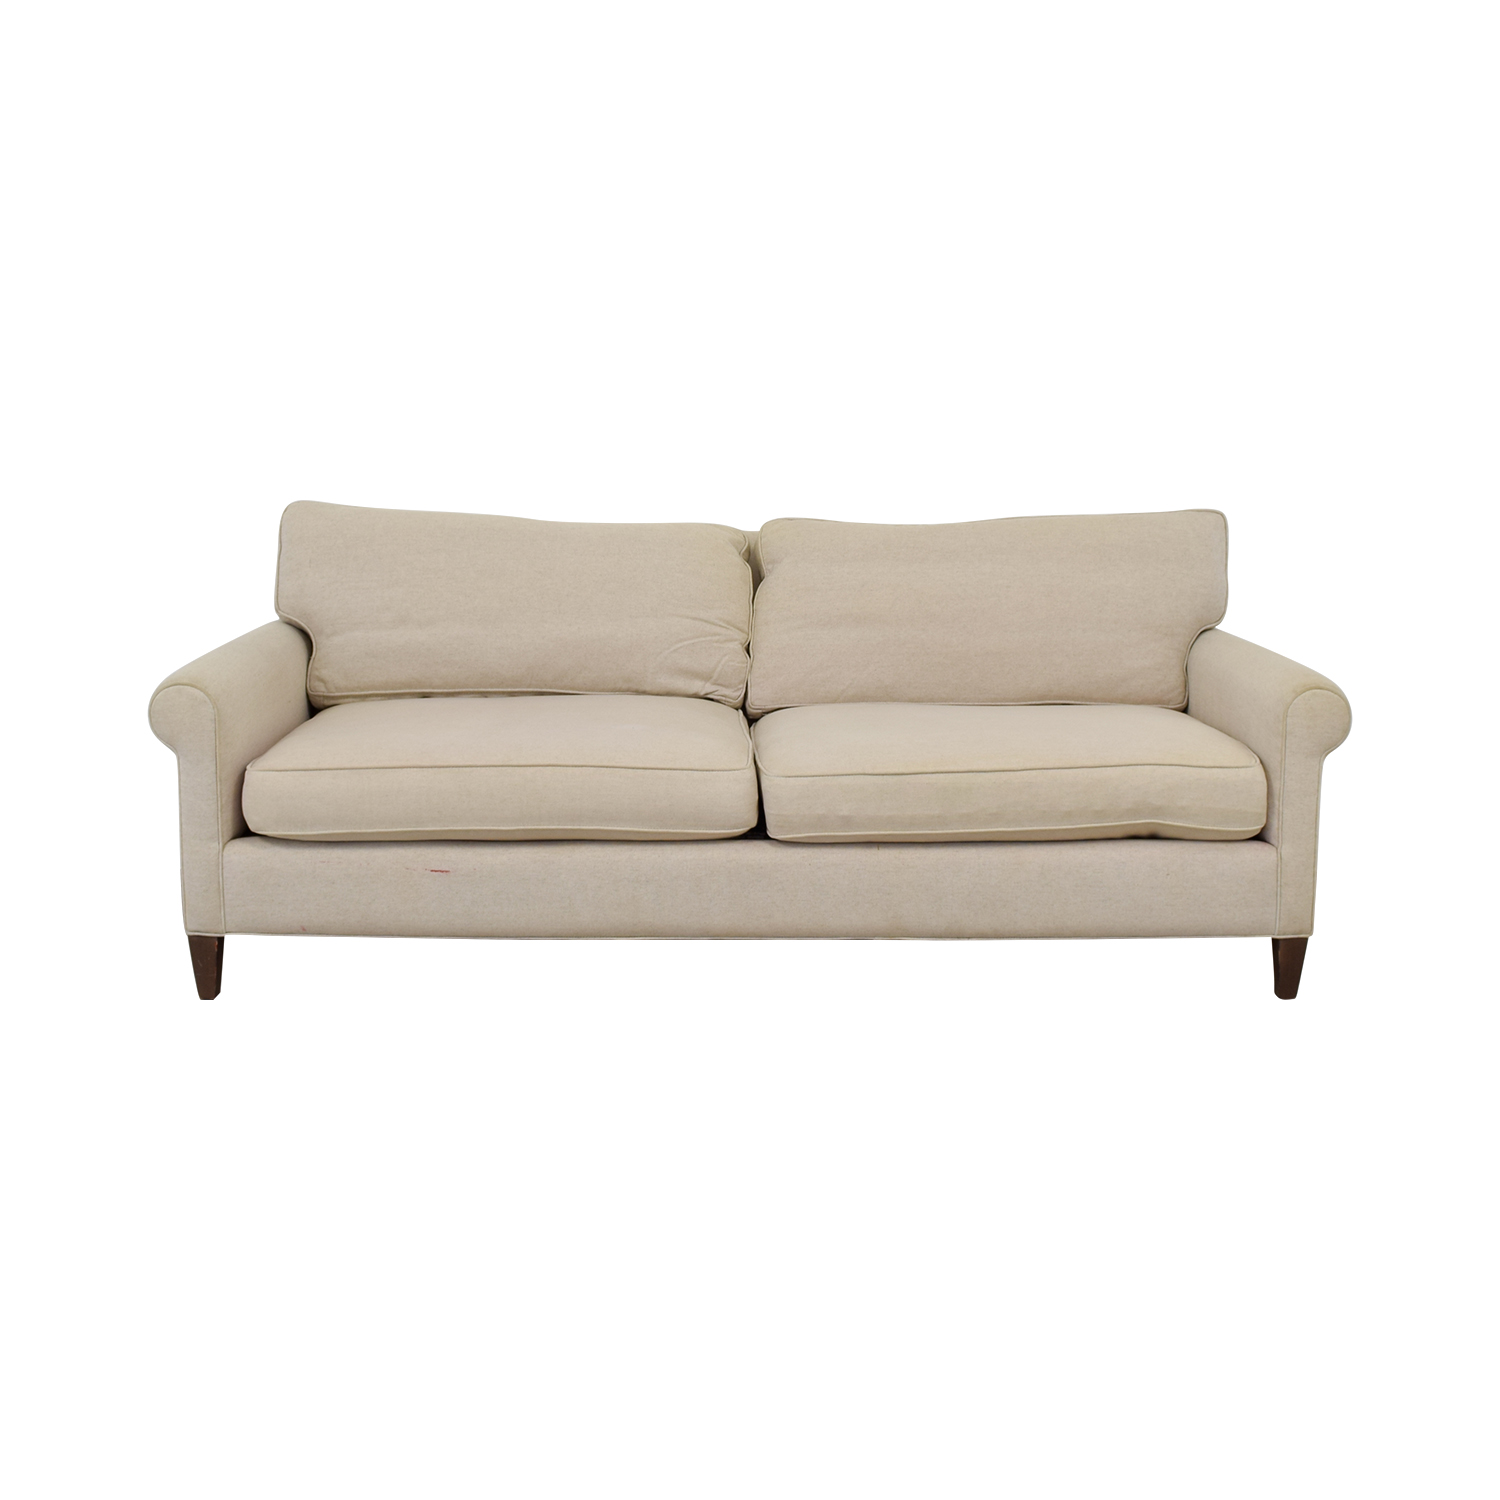 Crate & Barrel Montclair Beige Two Cushion Sofa / Sofas